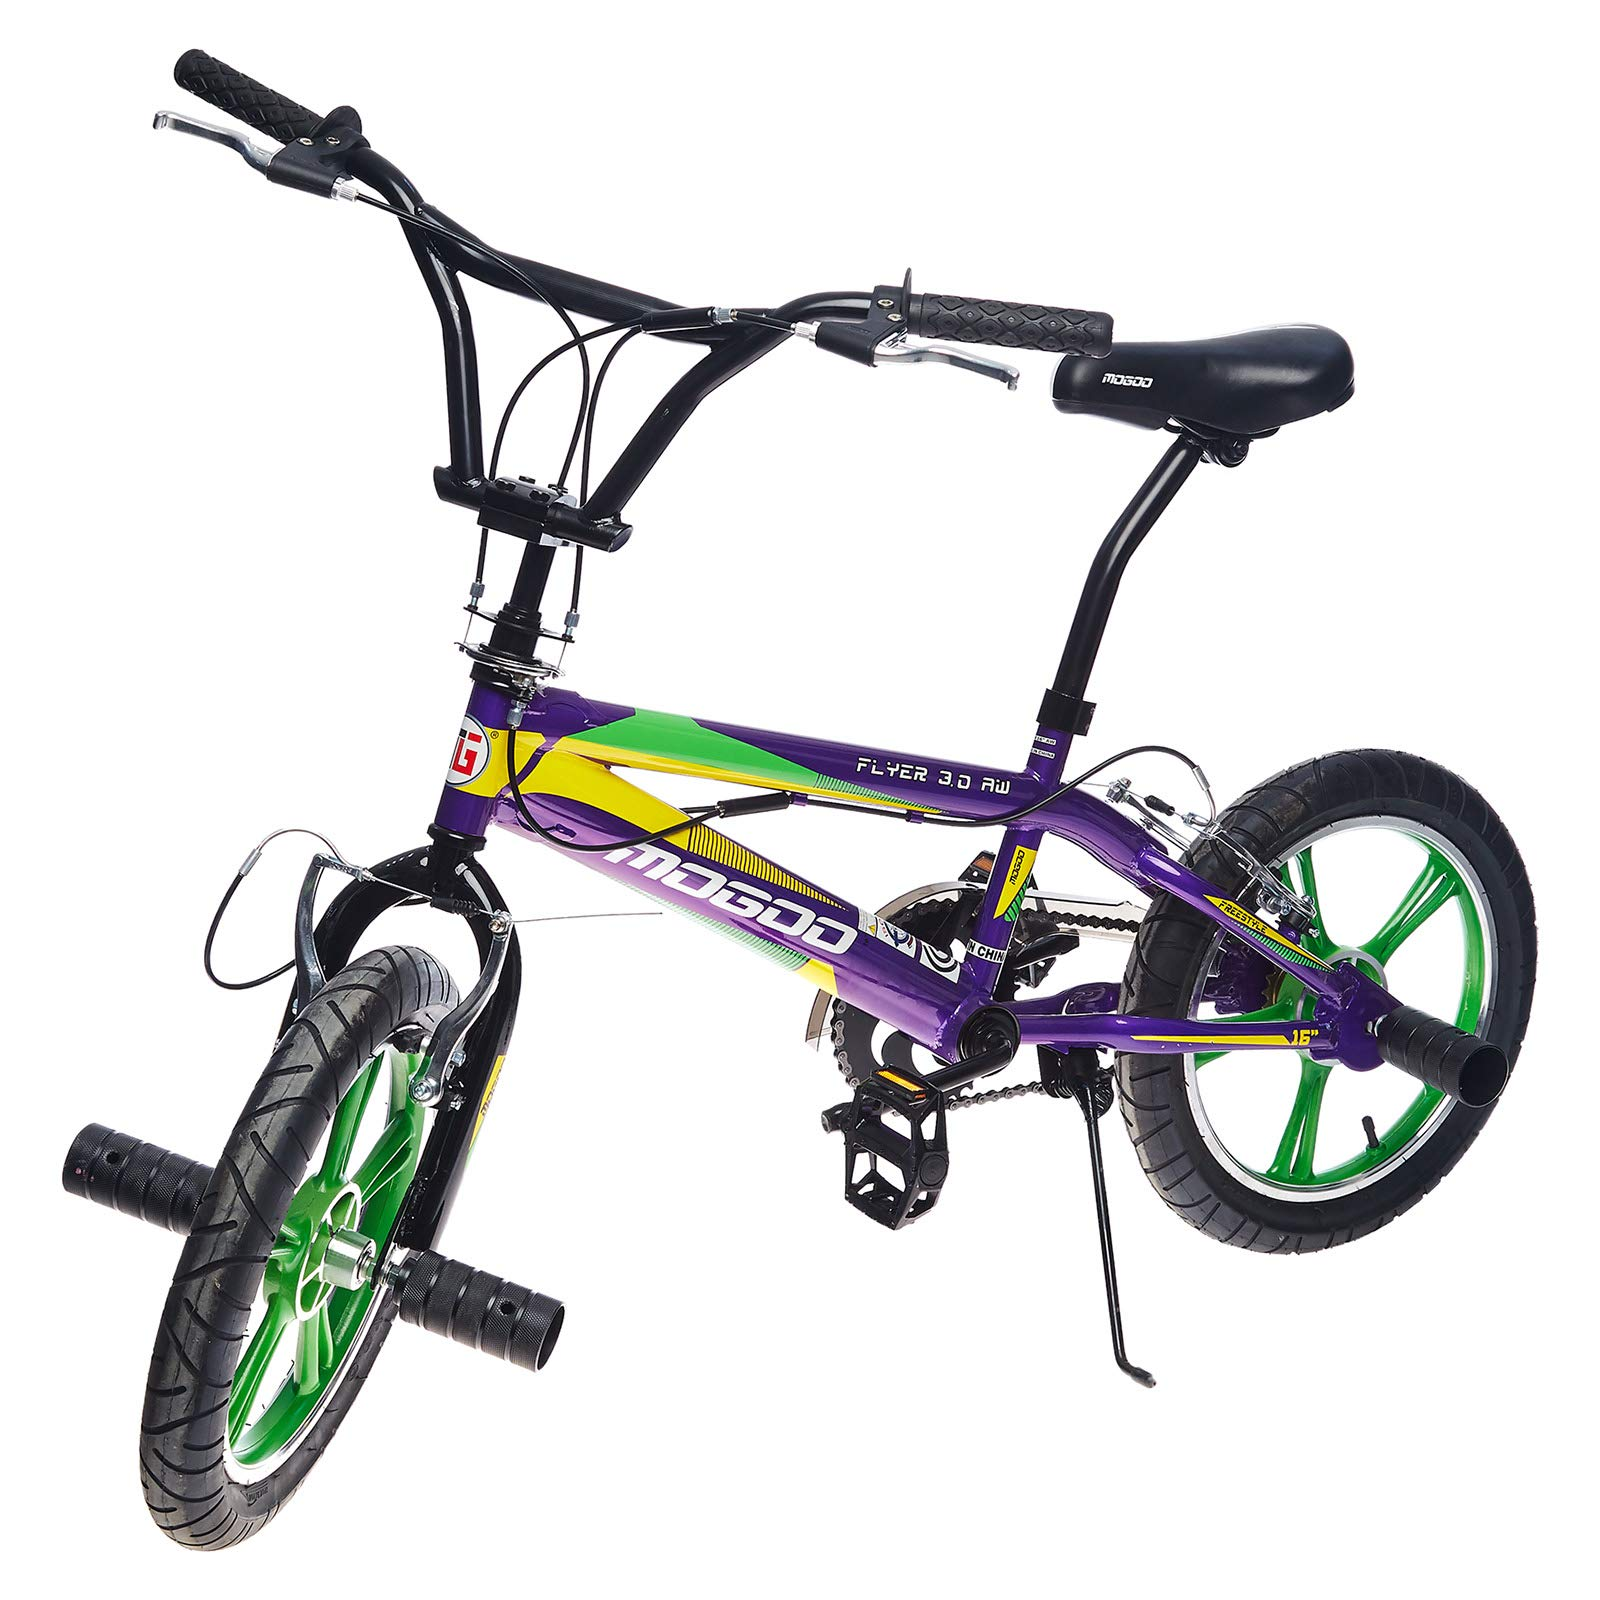 Mogoo Flyer Aw 16 Inch Bmx Bike Purple Price In Uae Amazon Ae